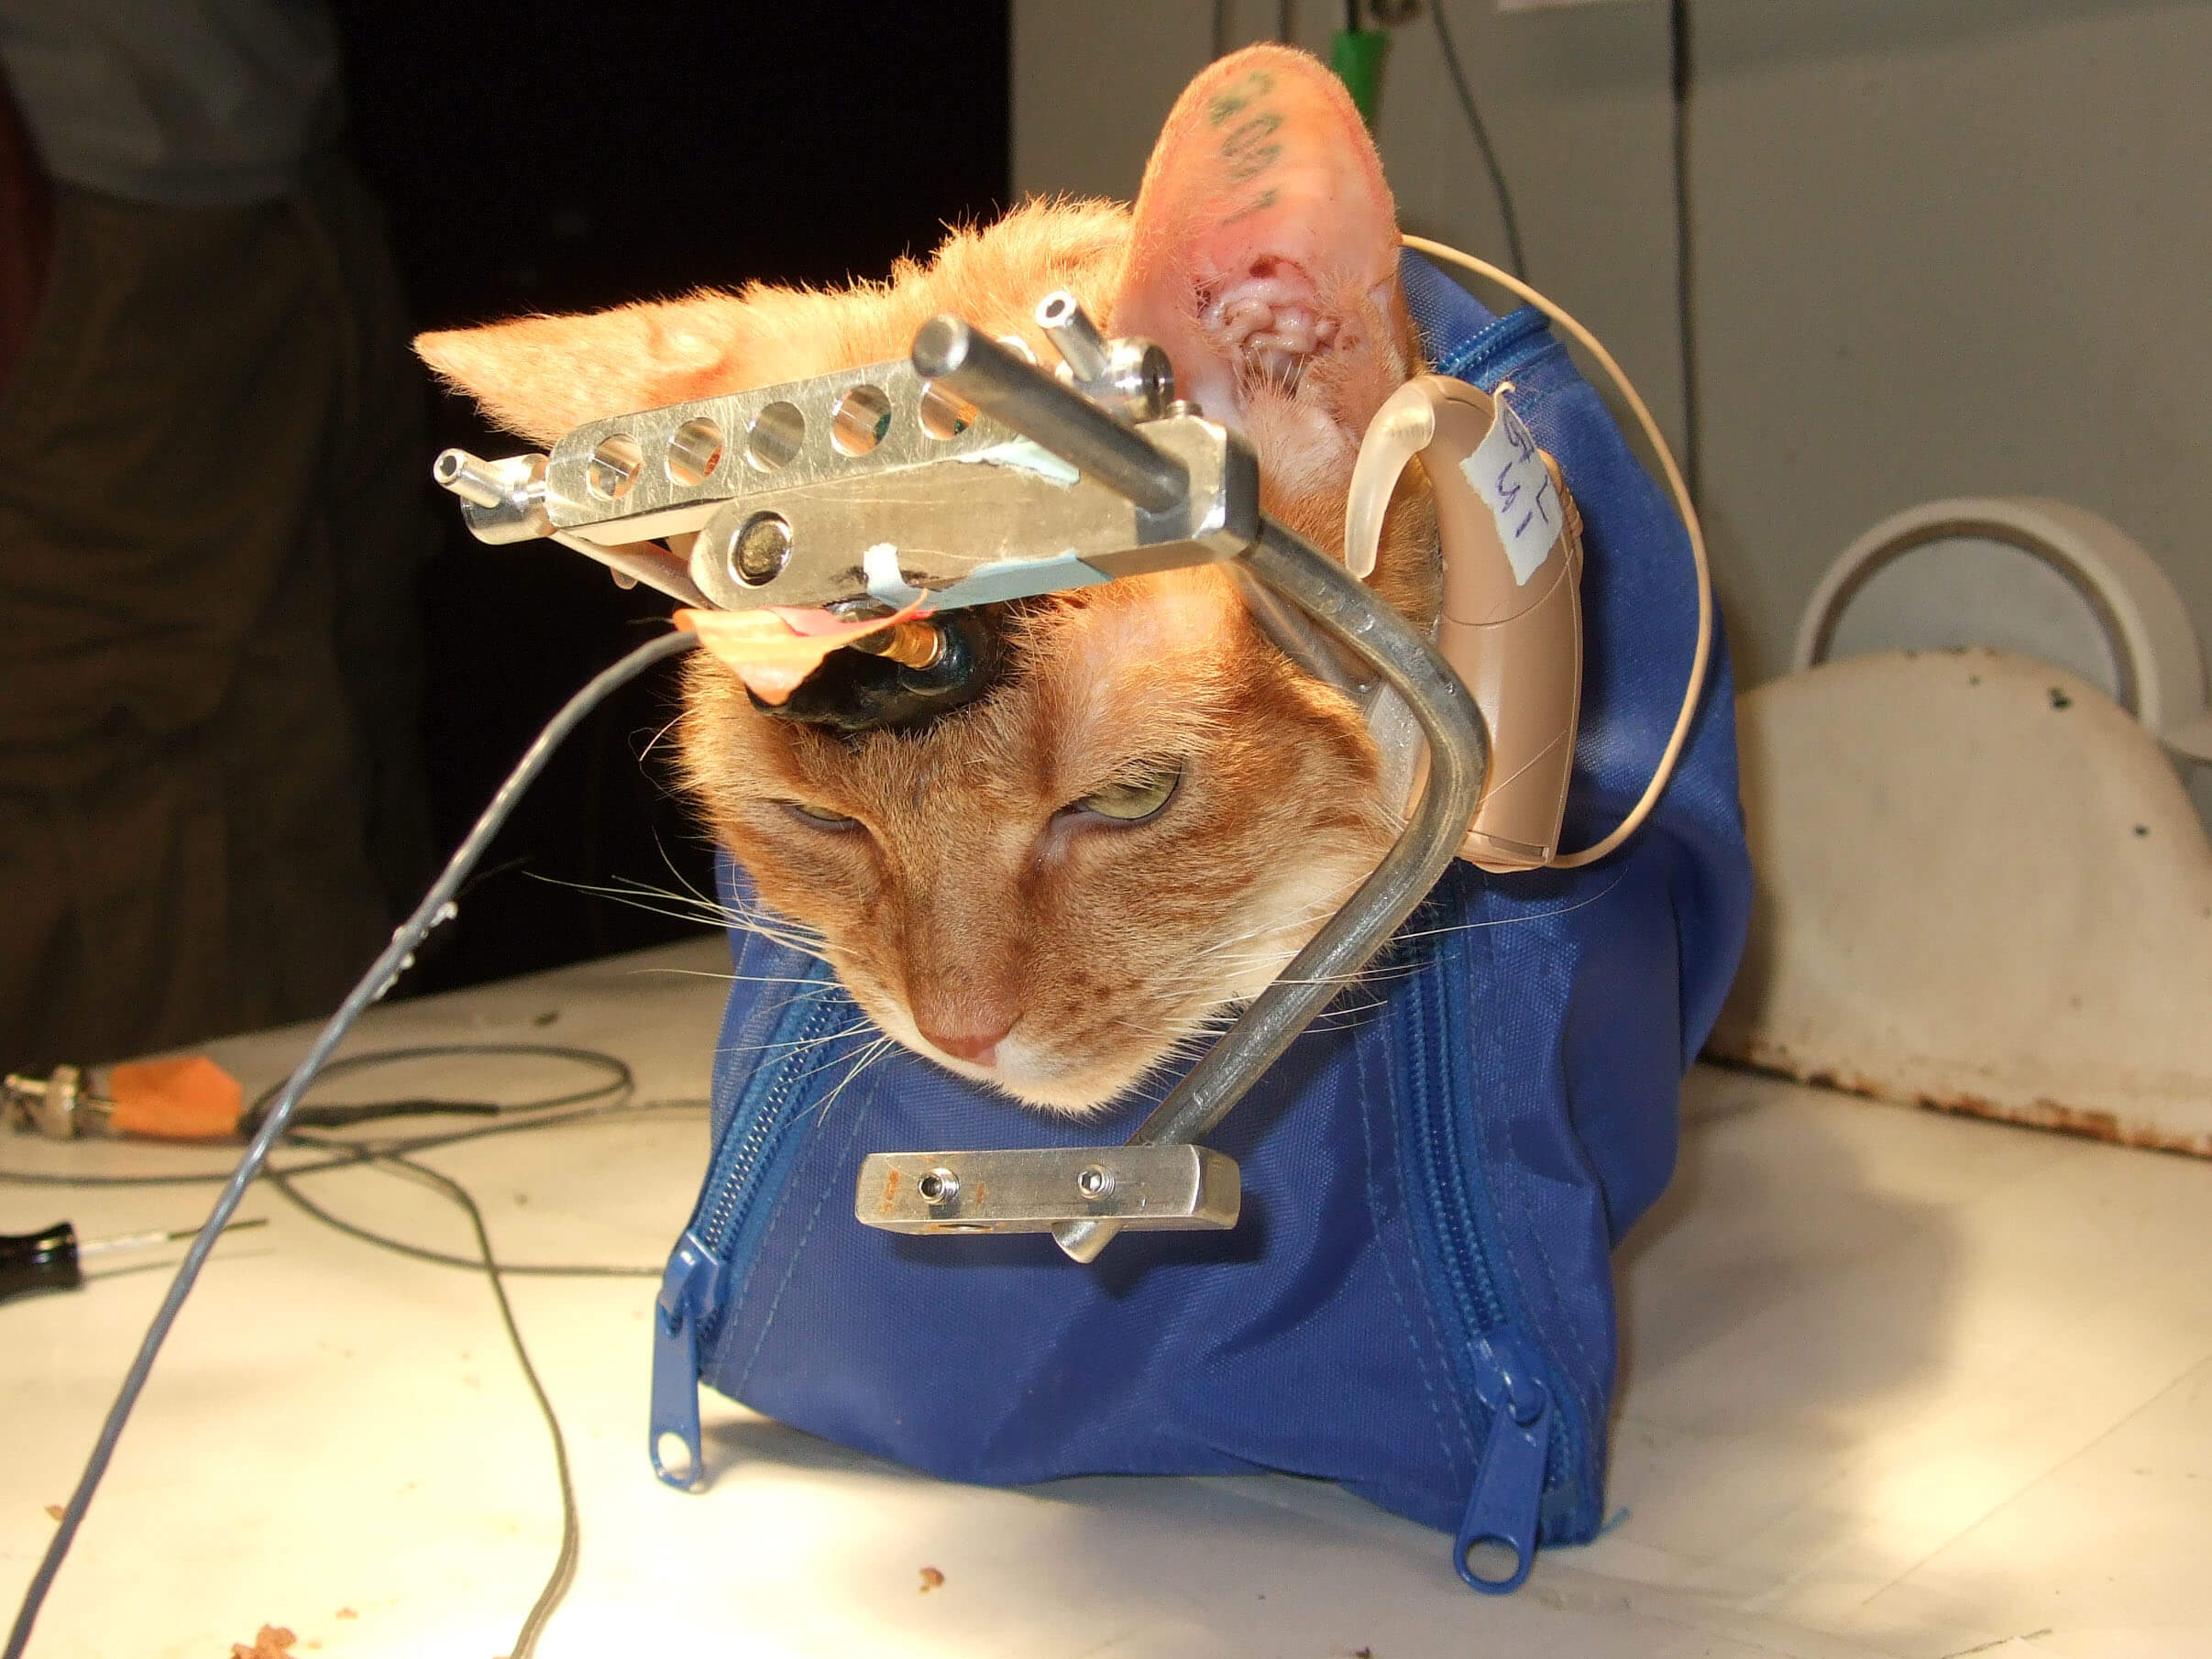 How is Animal testing improveing surgical procedures?